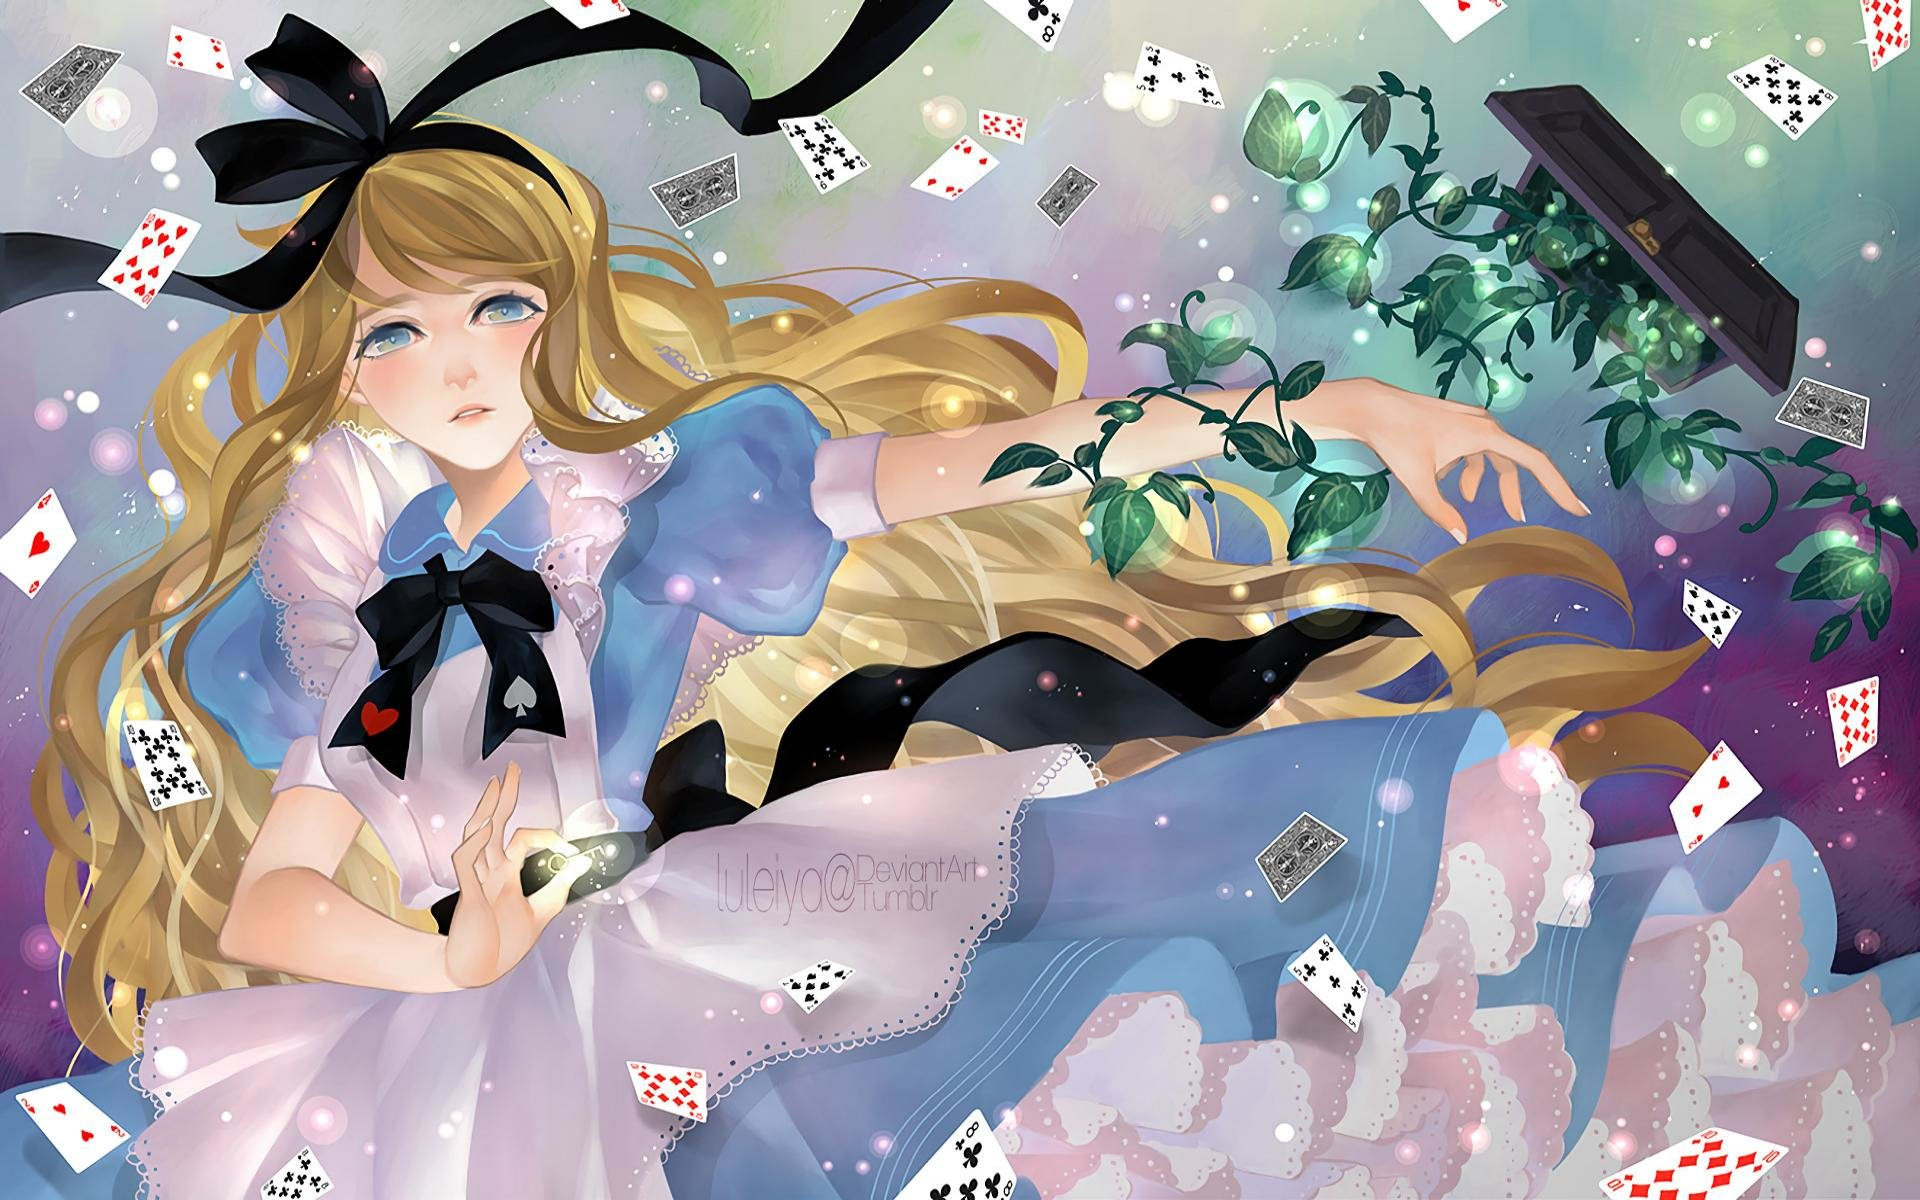 download hd 1920x1200 alice in wonderland anime computer background